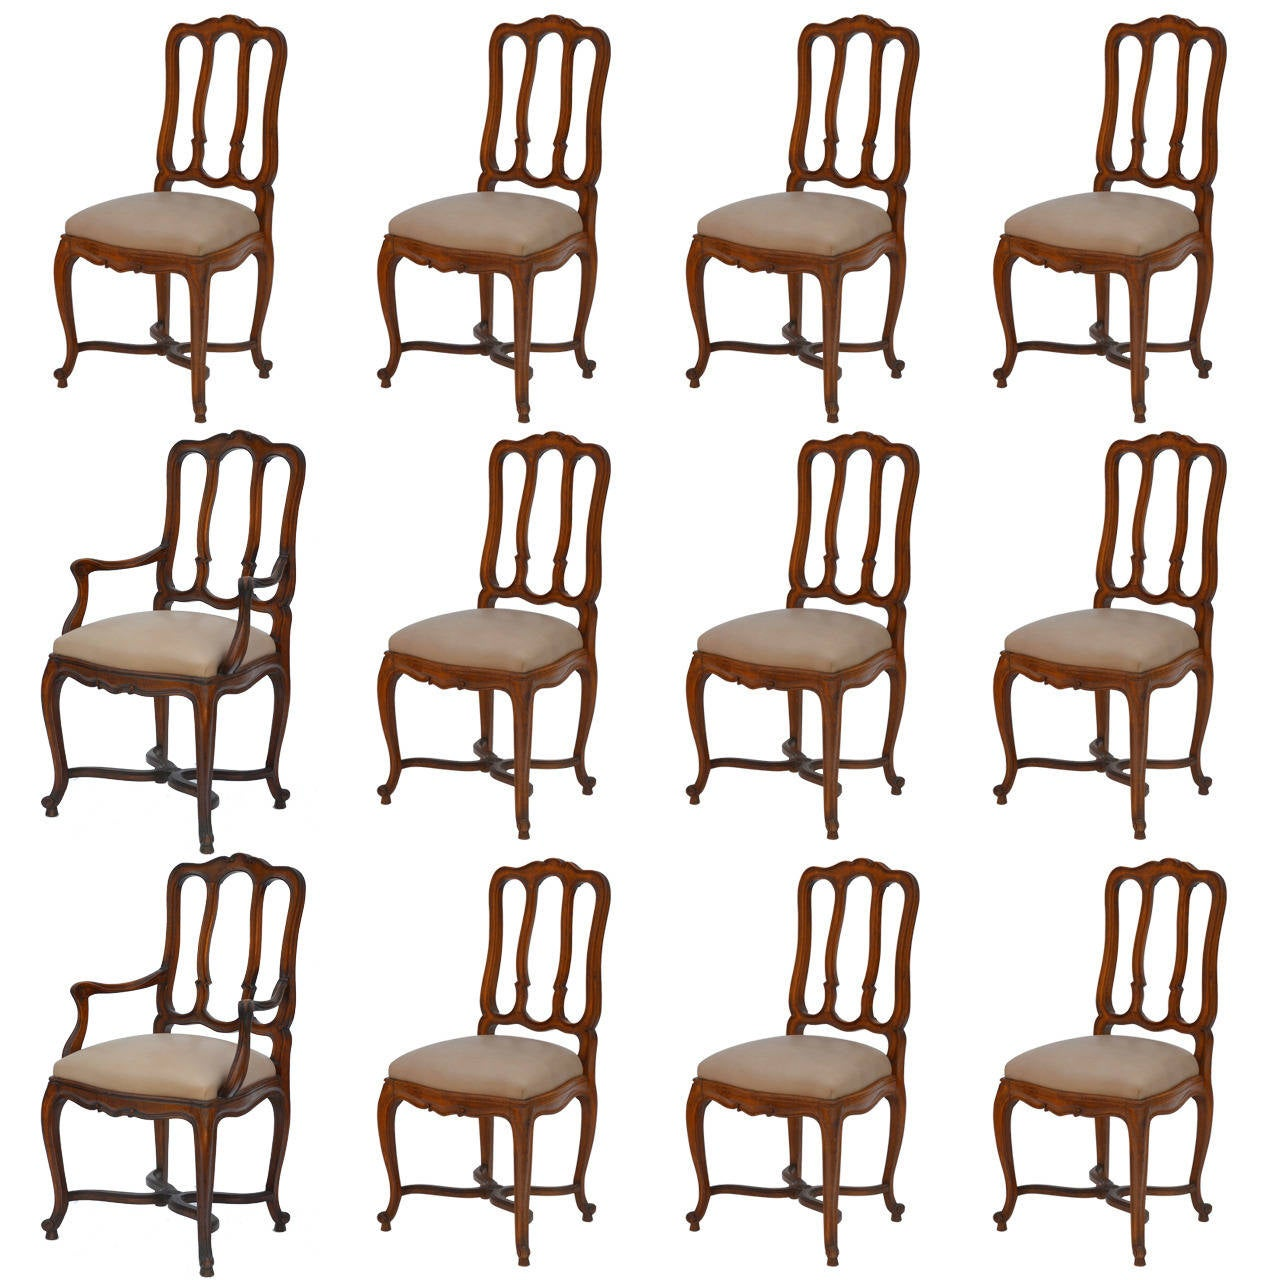 Impressive Set of 12 Chic French Louis XV Style Dining Chairs and Armchairs